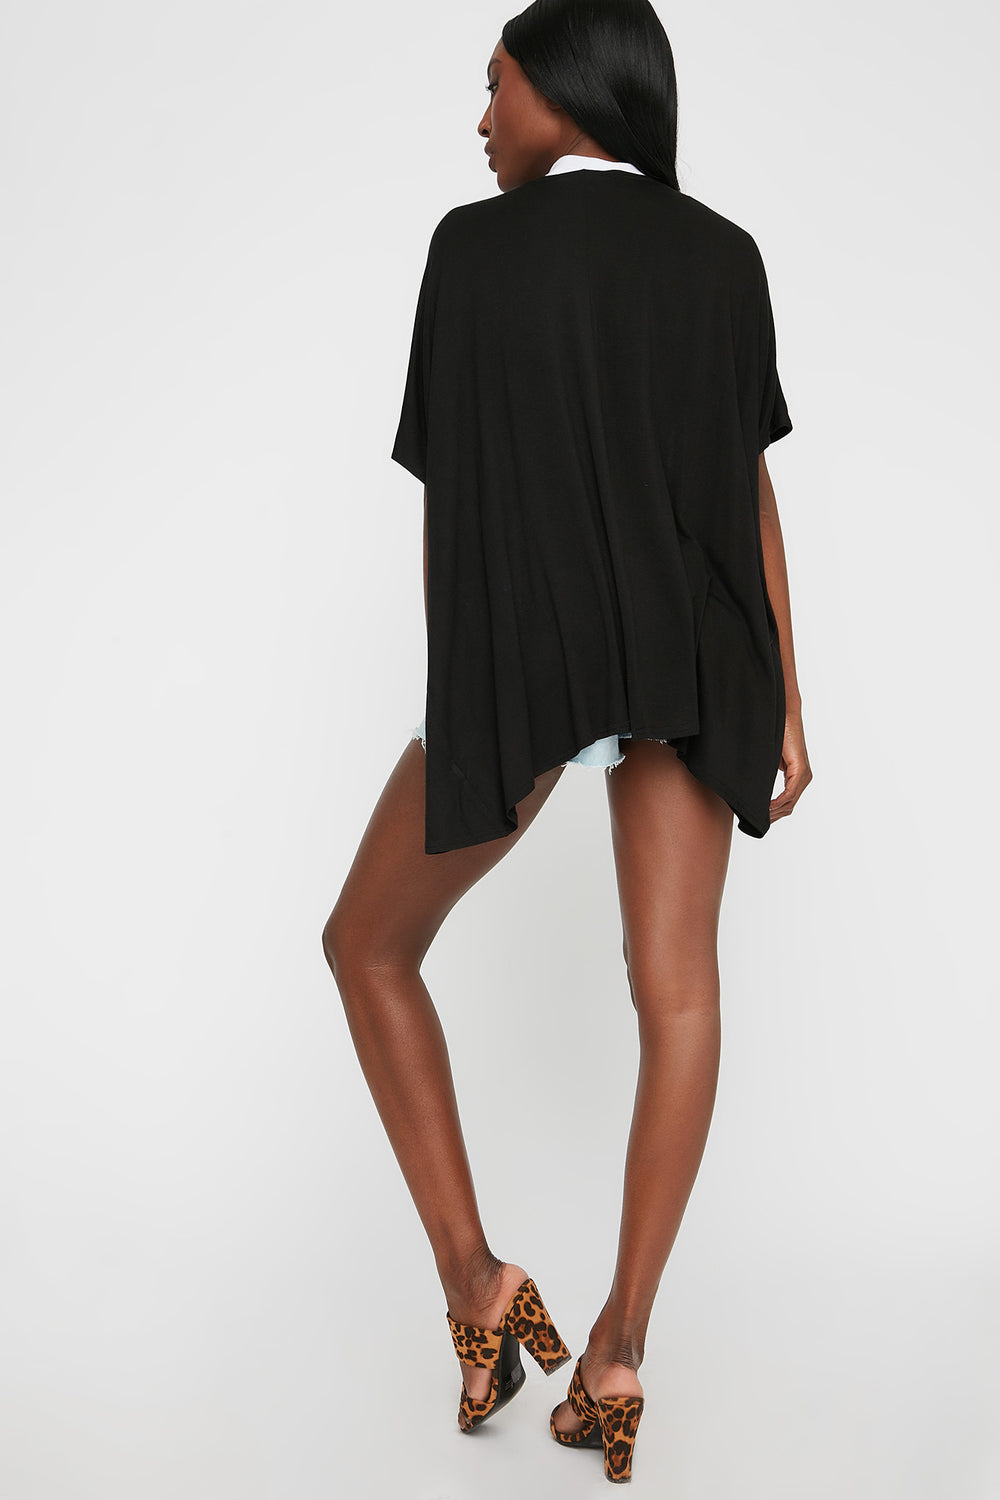 Oversized Short Sleeve Cardigan Black